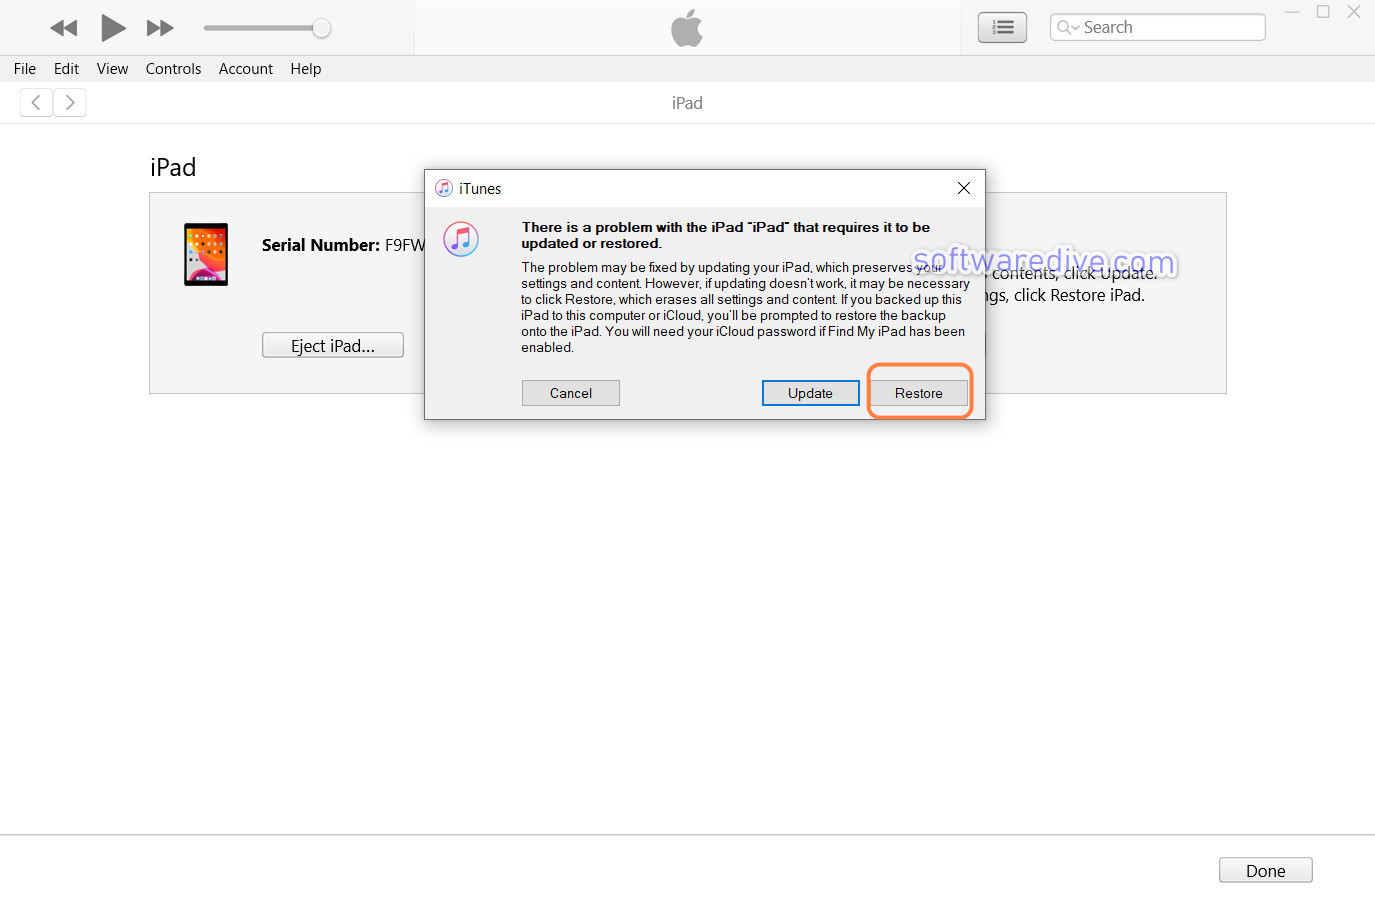 iPad requires to be restored itunes